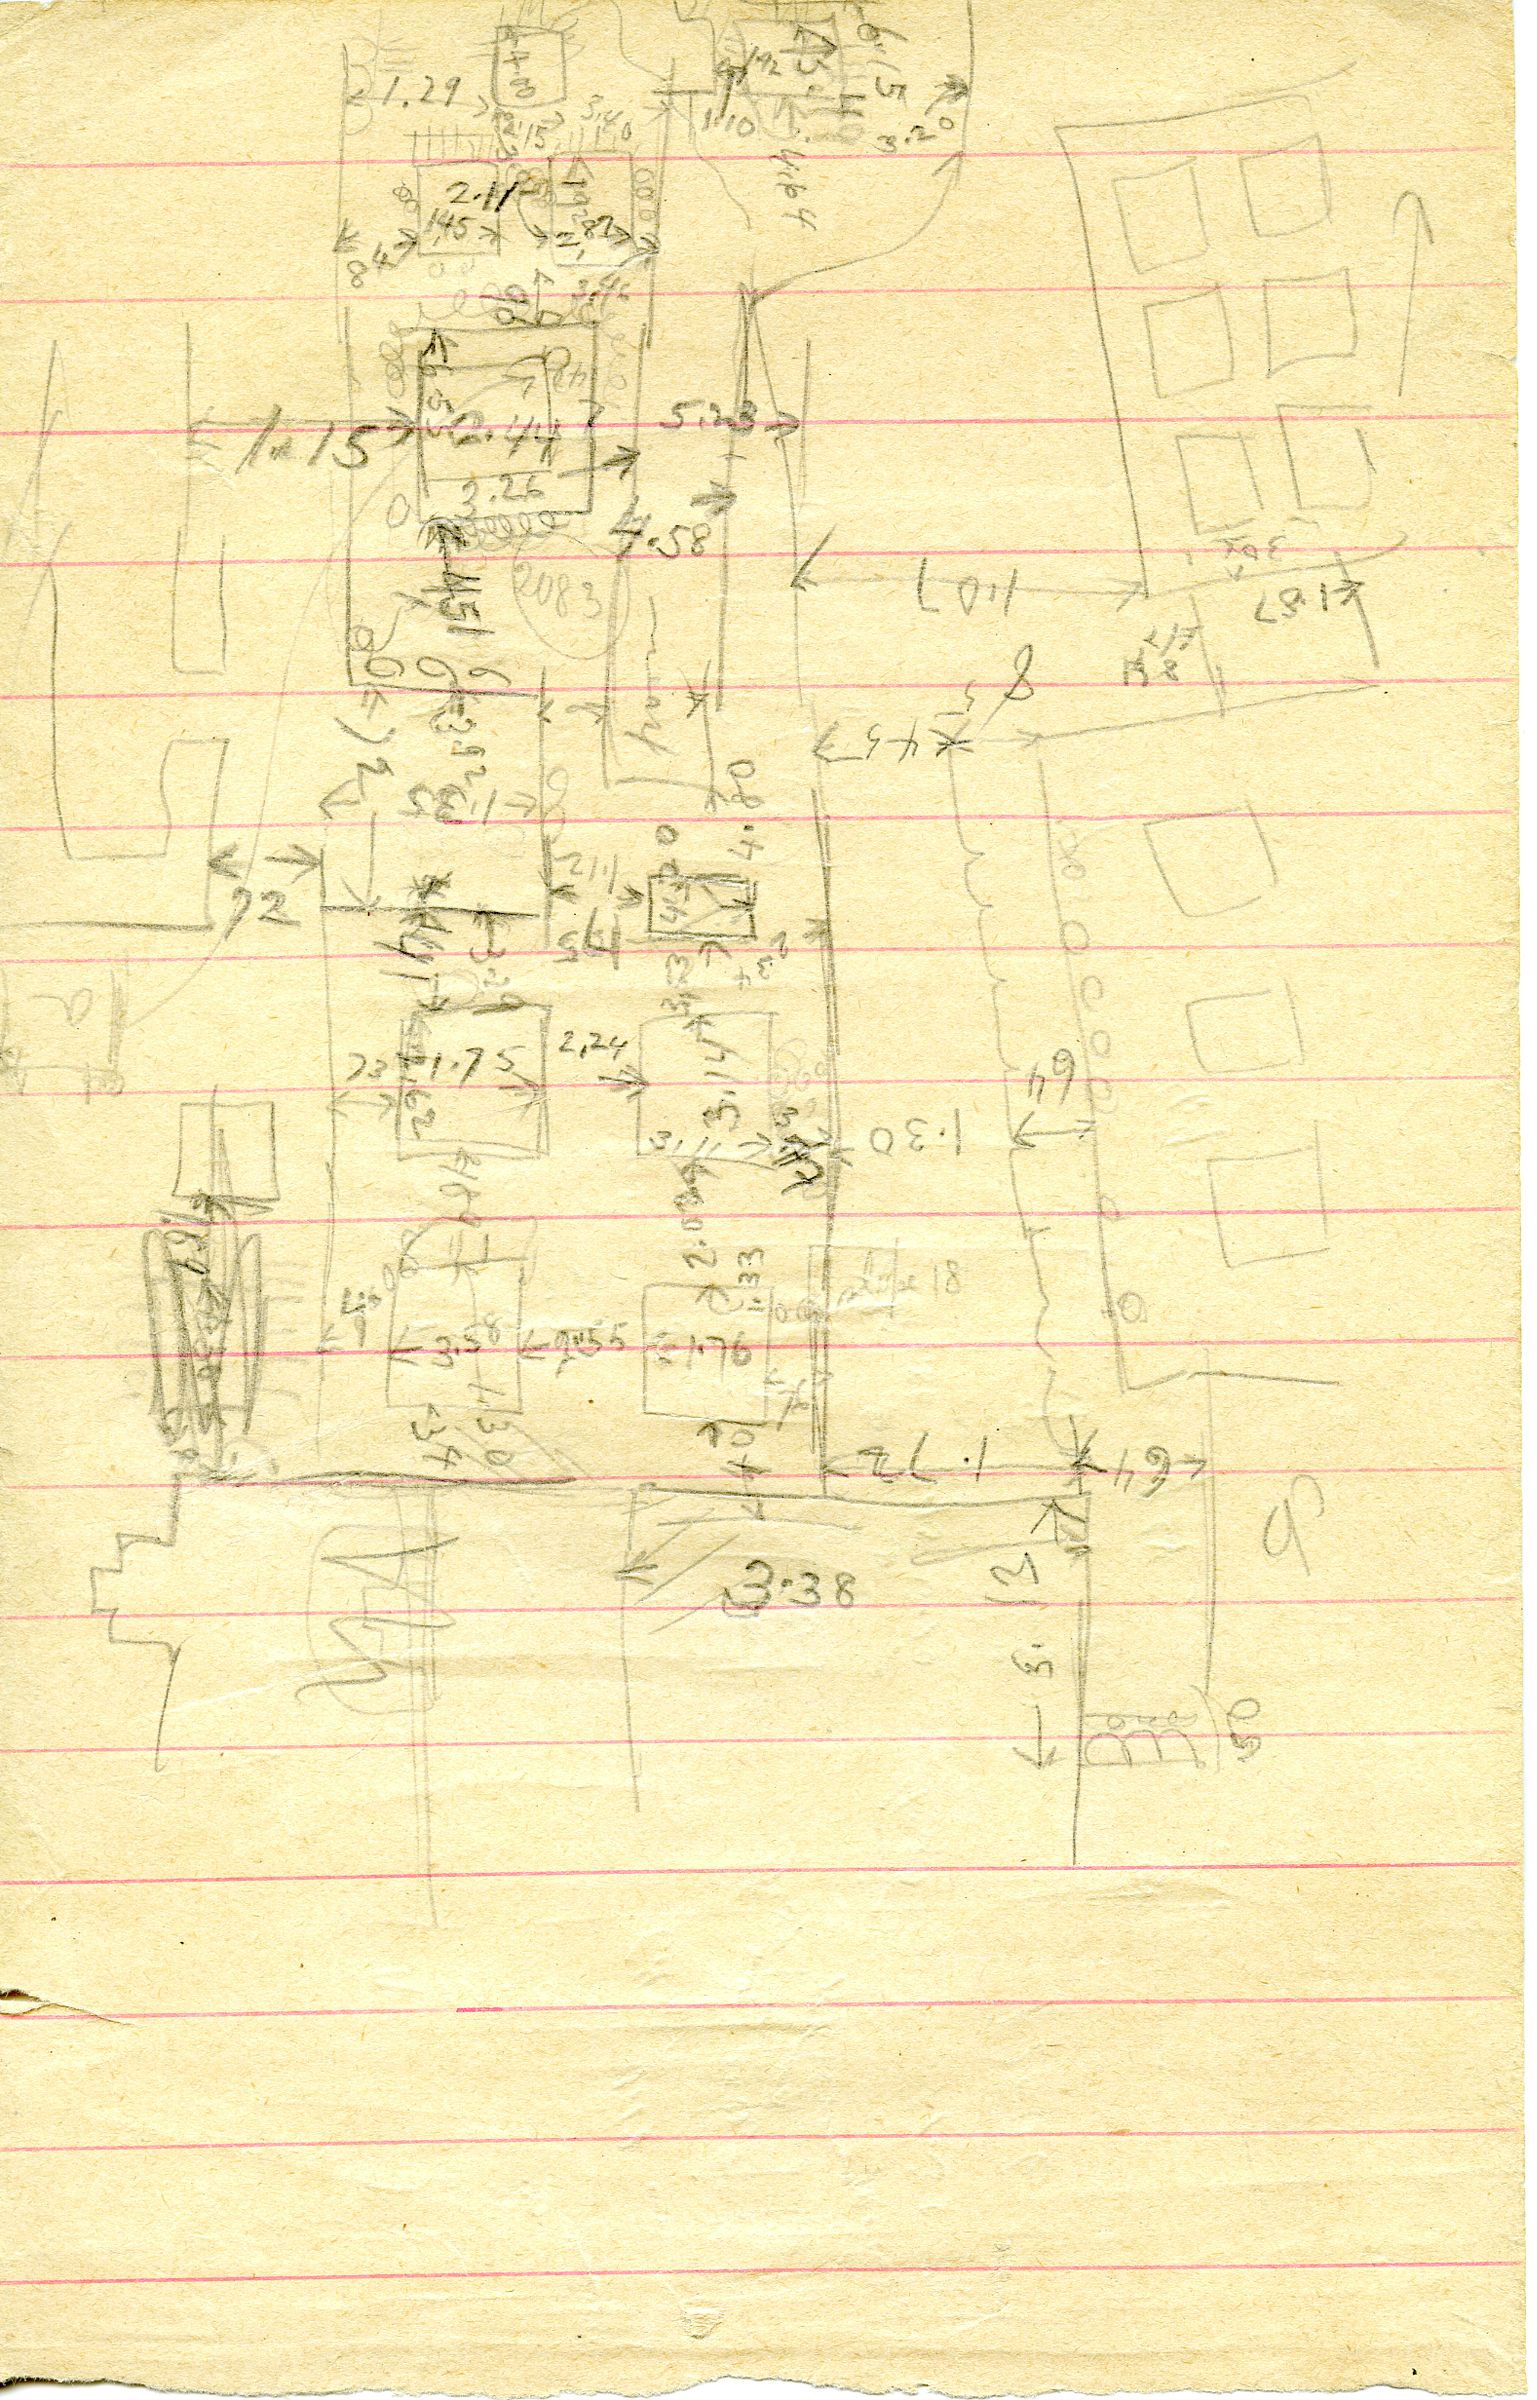 Maps and plans: Sketch plan of G 3083, G 3087